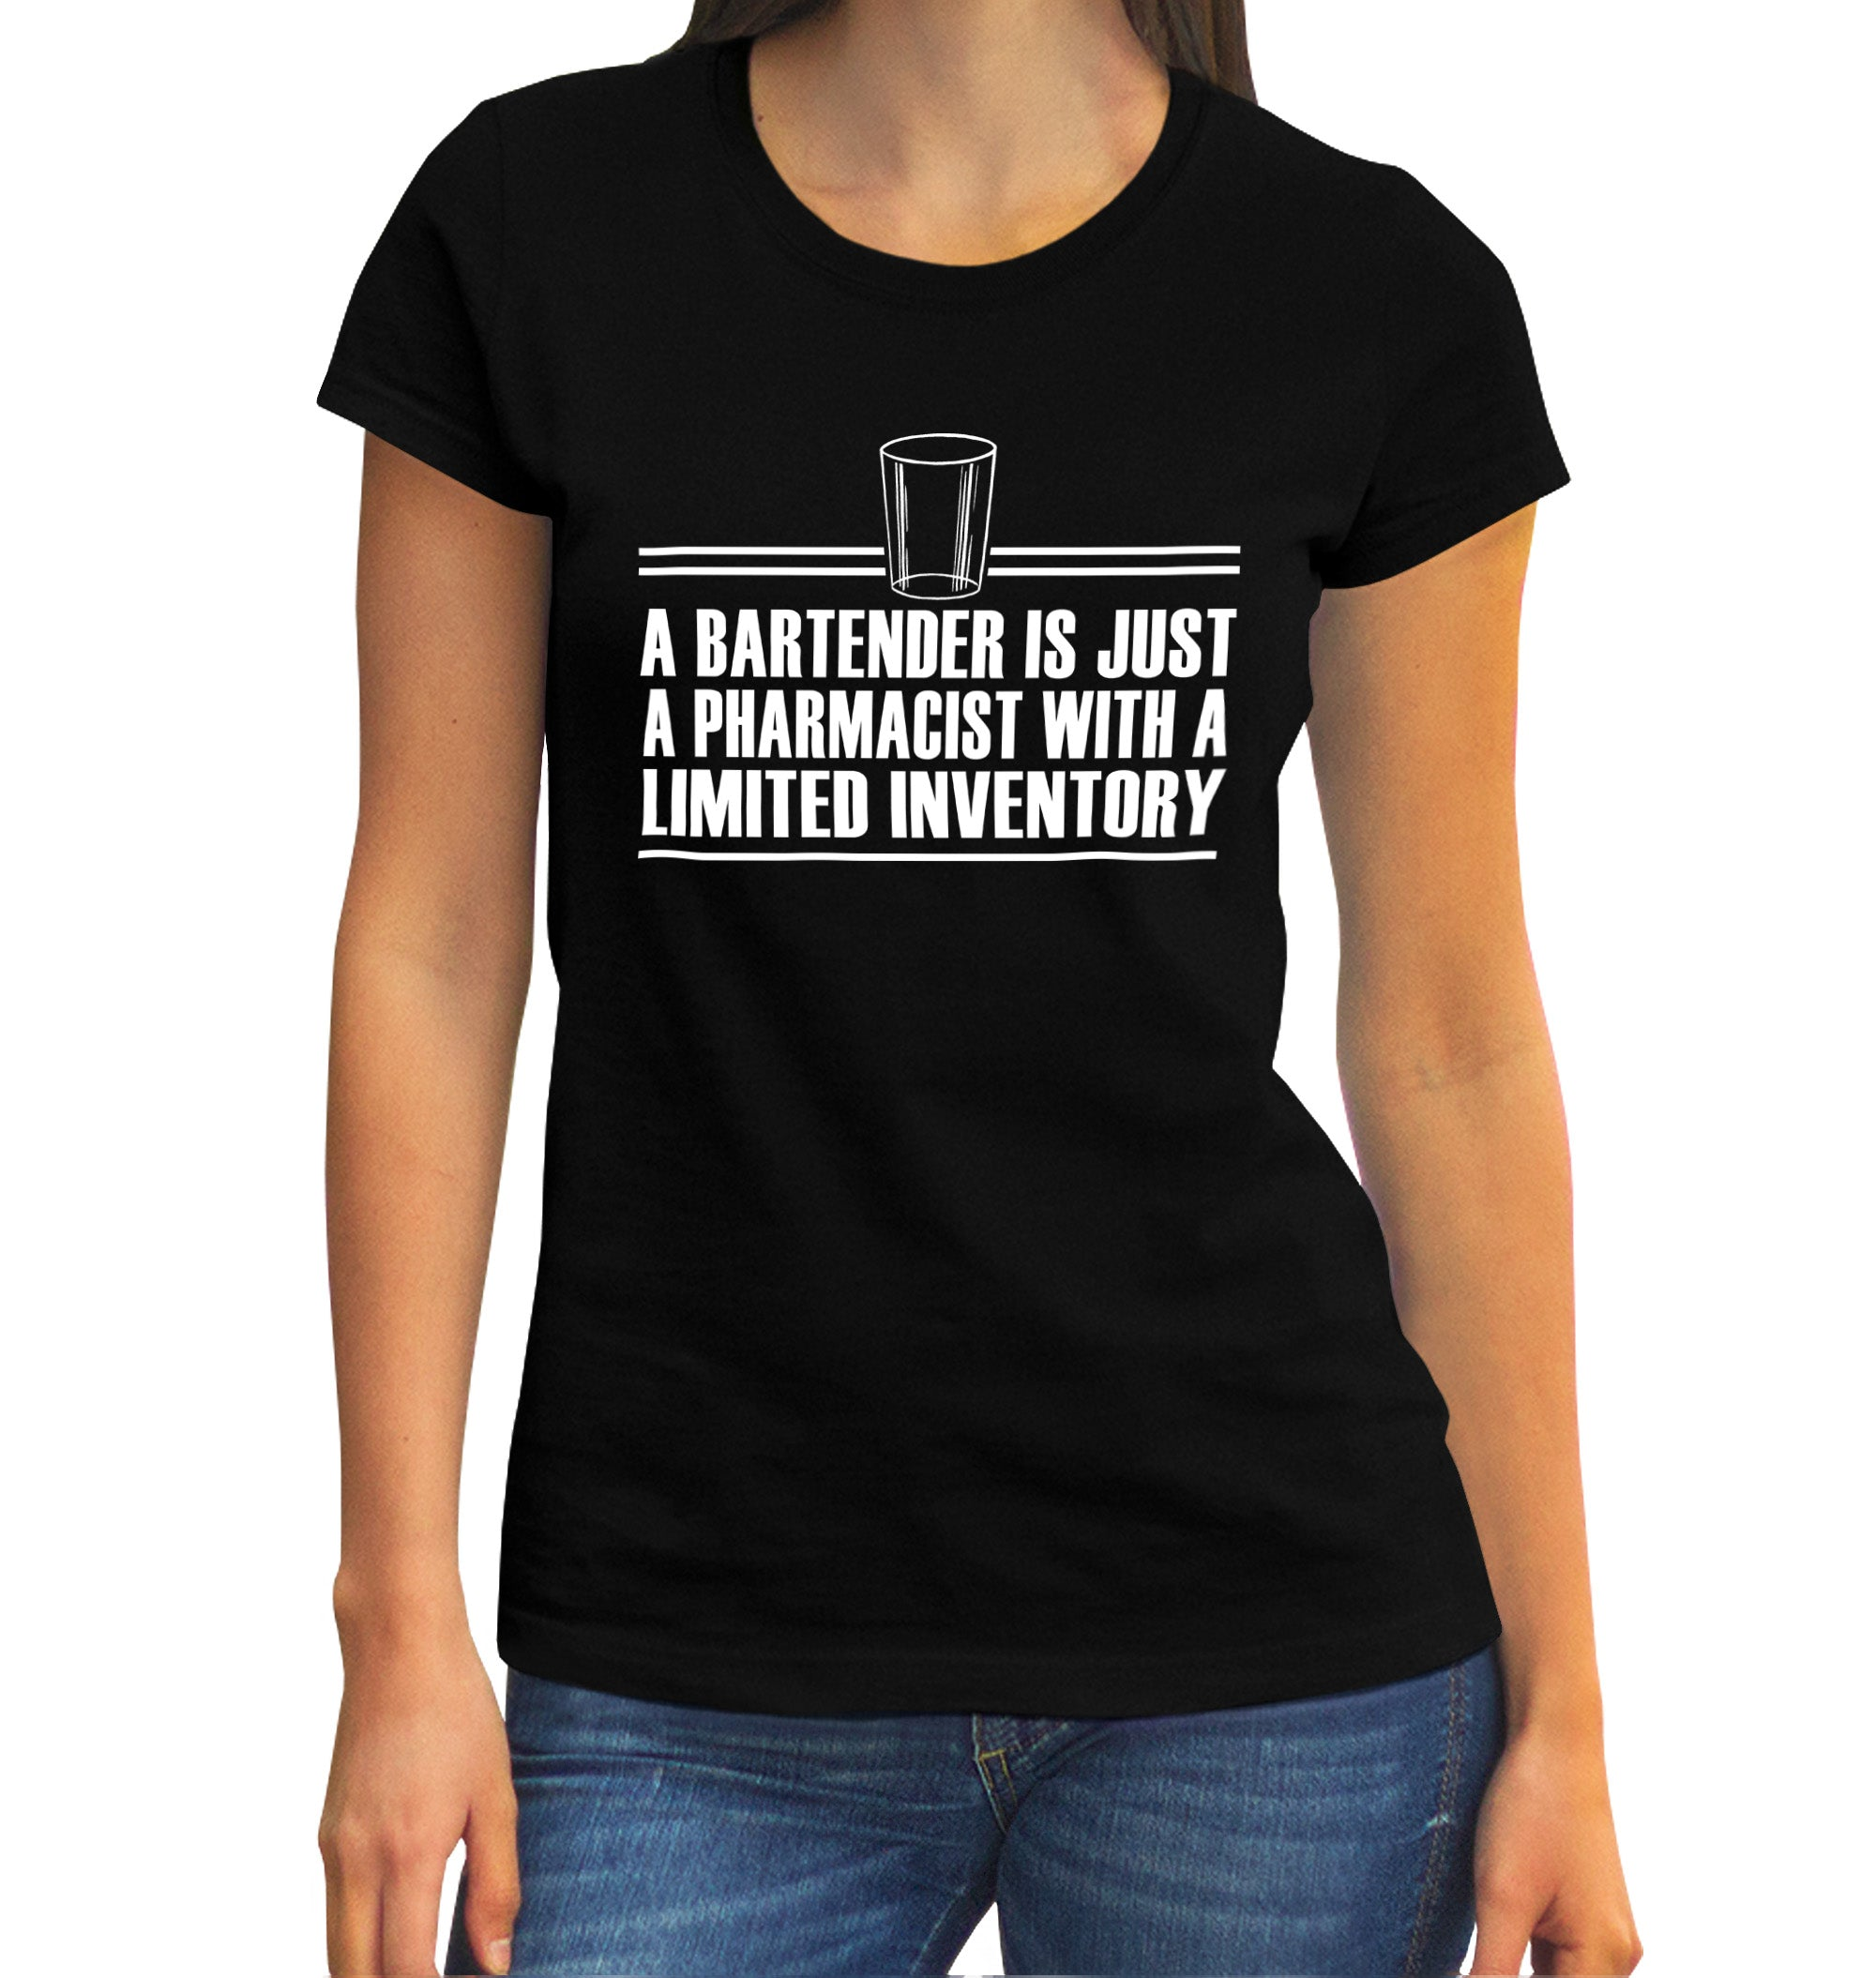 Women's Bartender is Just a Pharmicist with Limited Inventory T-Shirt on Model